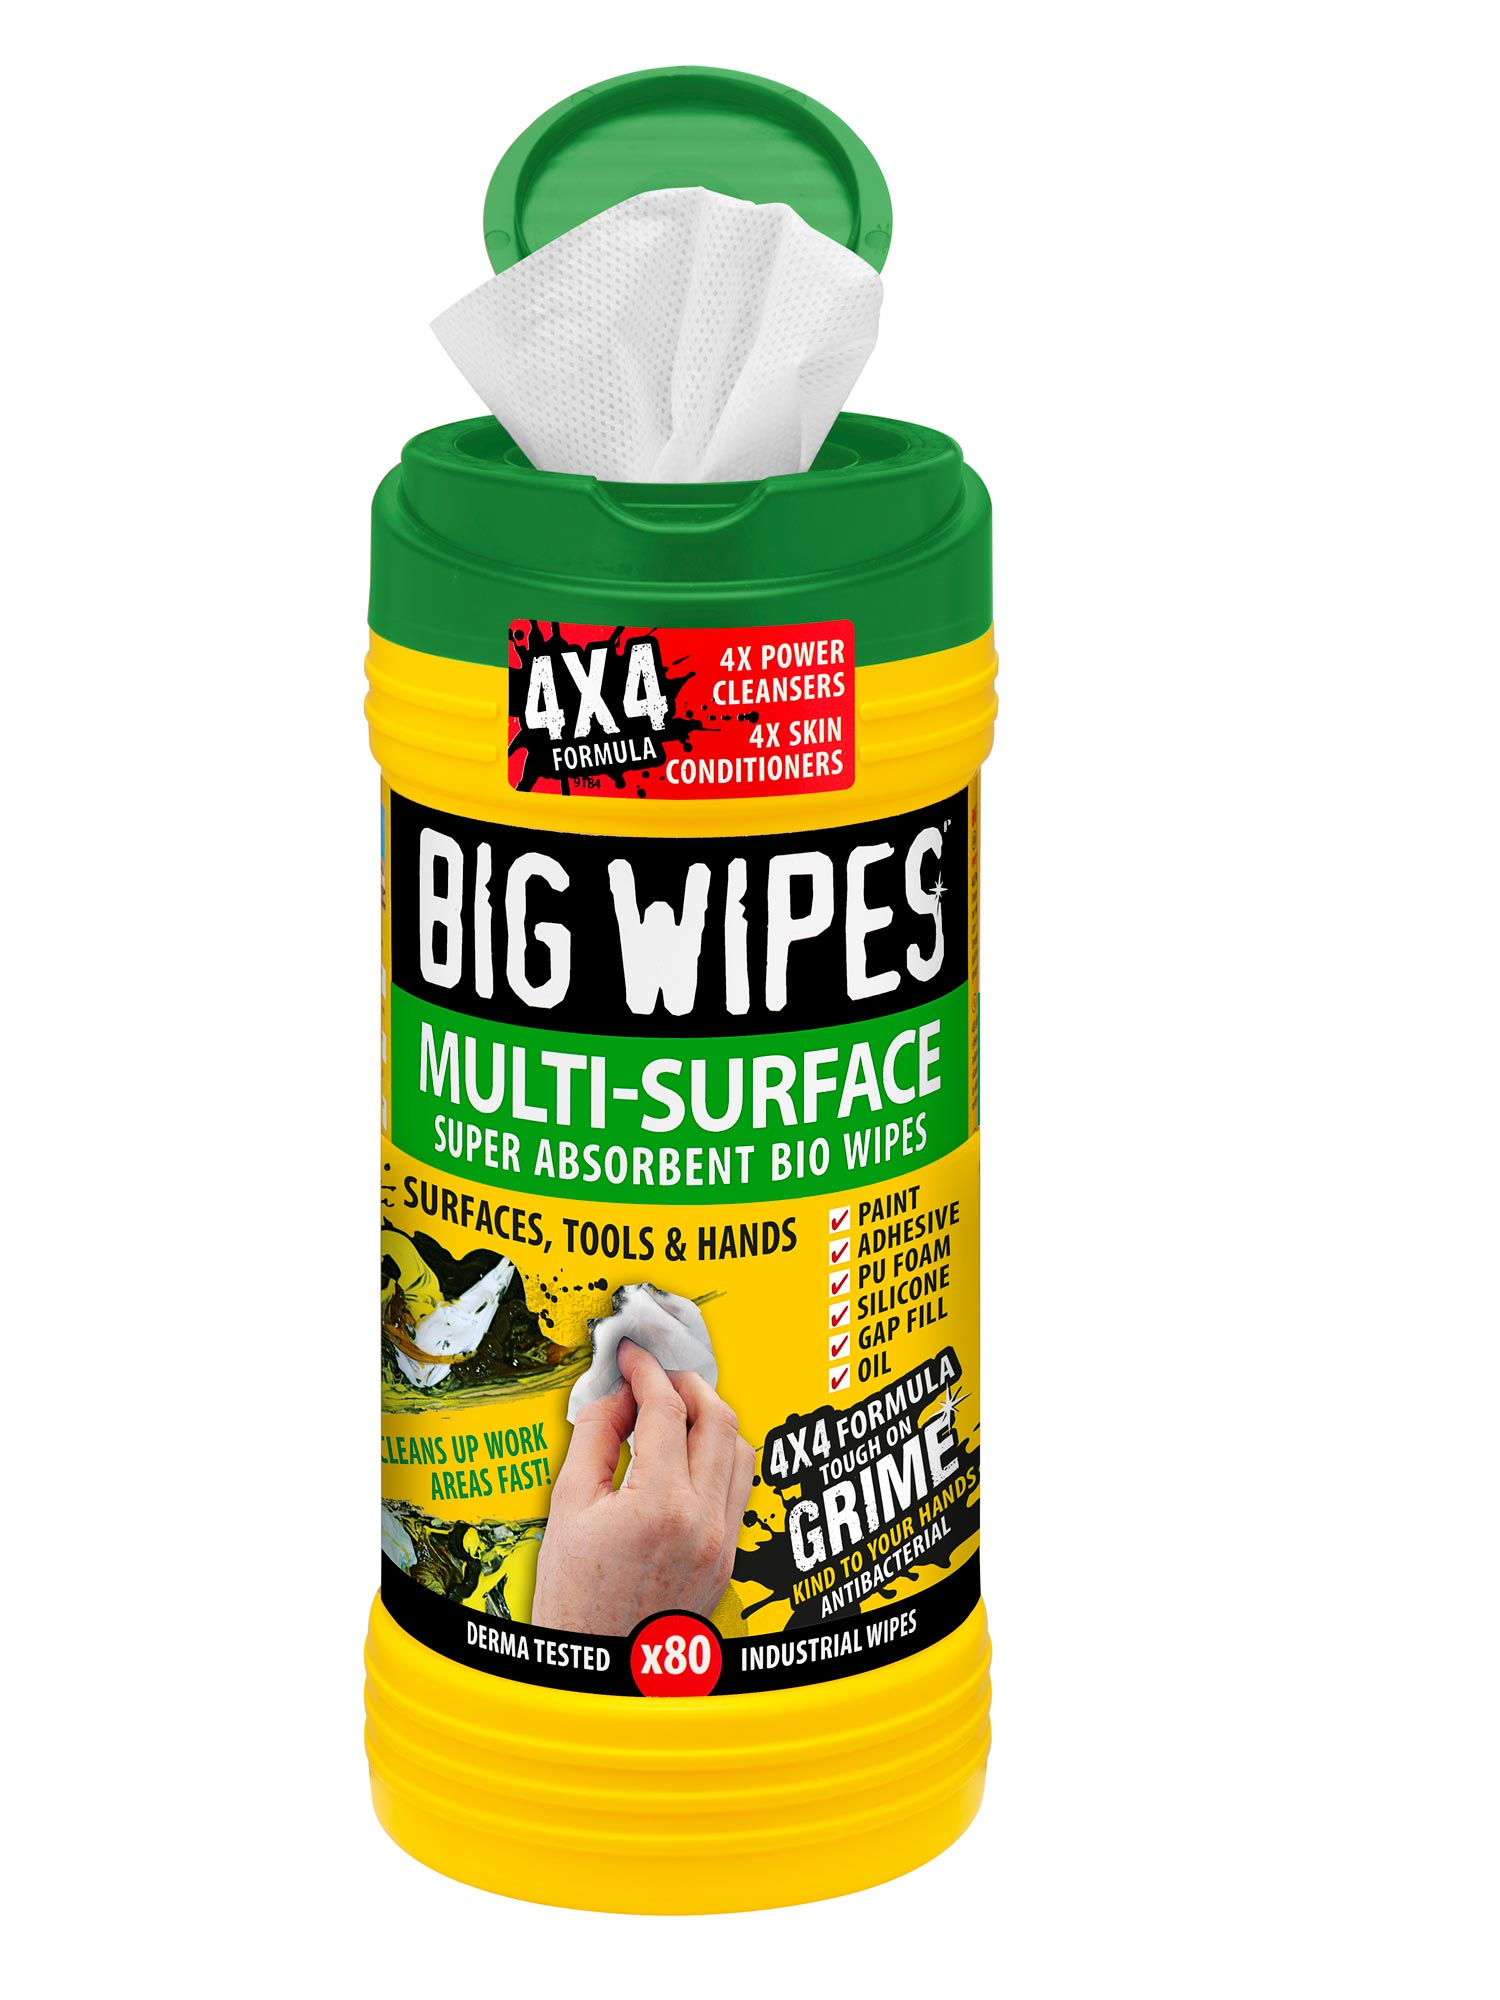 Big Wipes MultiSurface Green Biodegradeable wipes